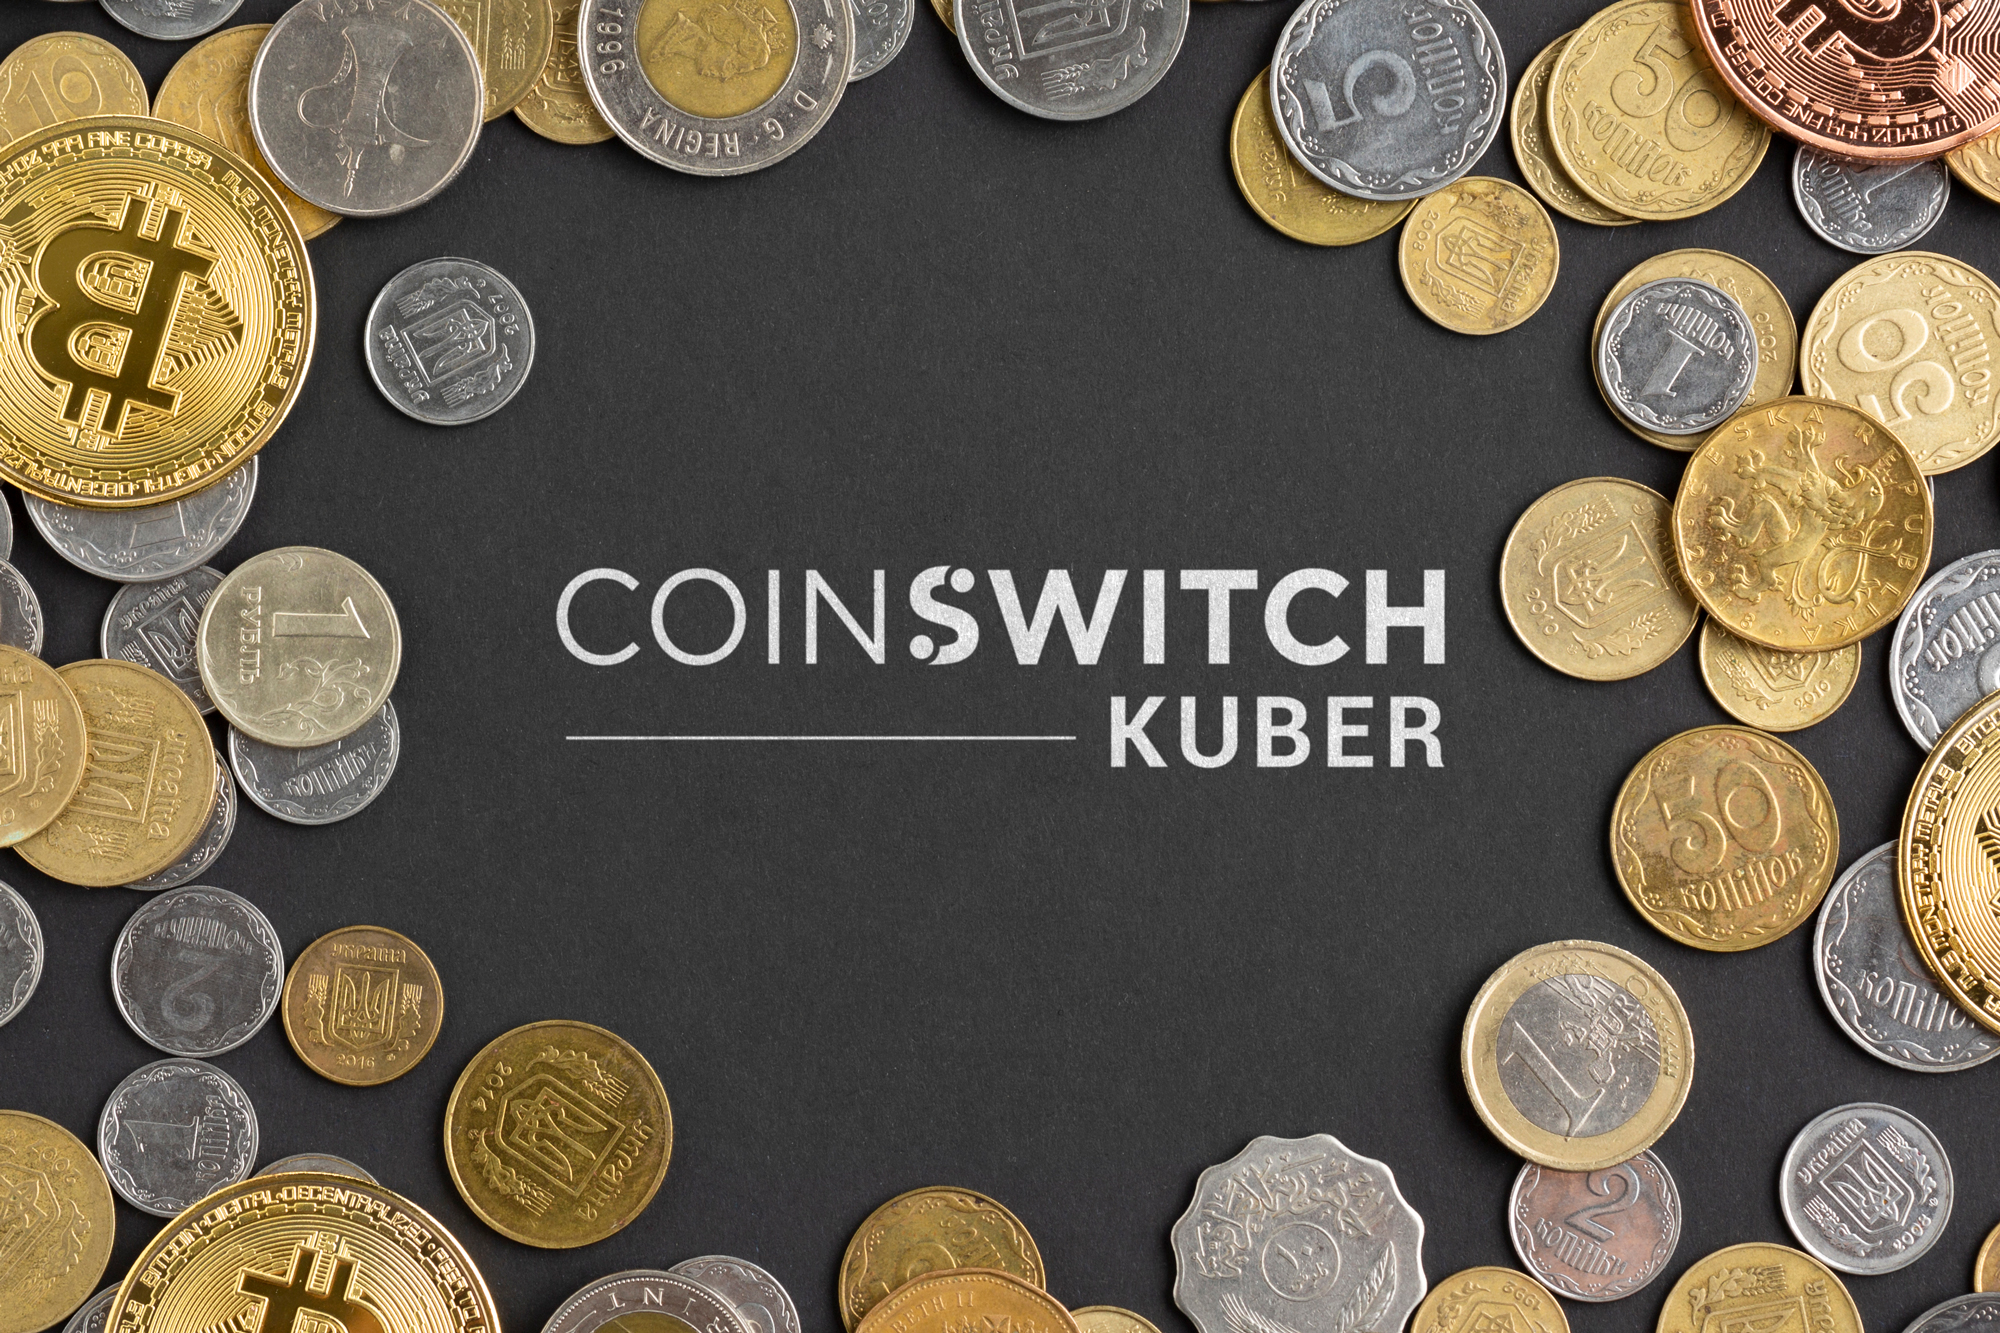 CoinSwitch Kuber: you-can-also-invest-in-cryptocurrencies-with-a-small-amount-like-rs-100